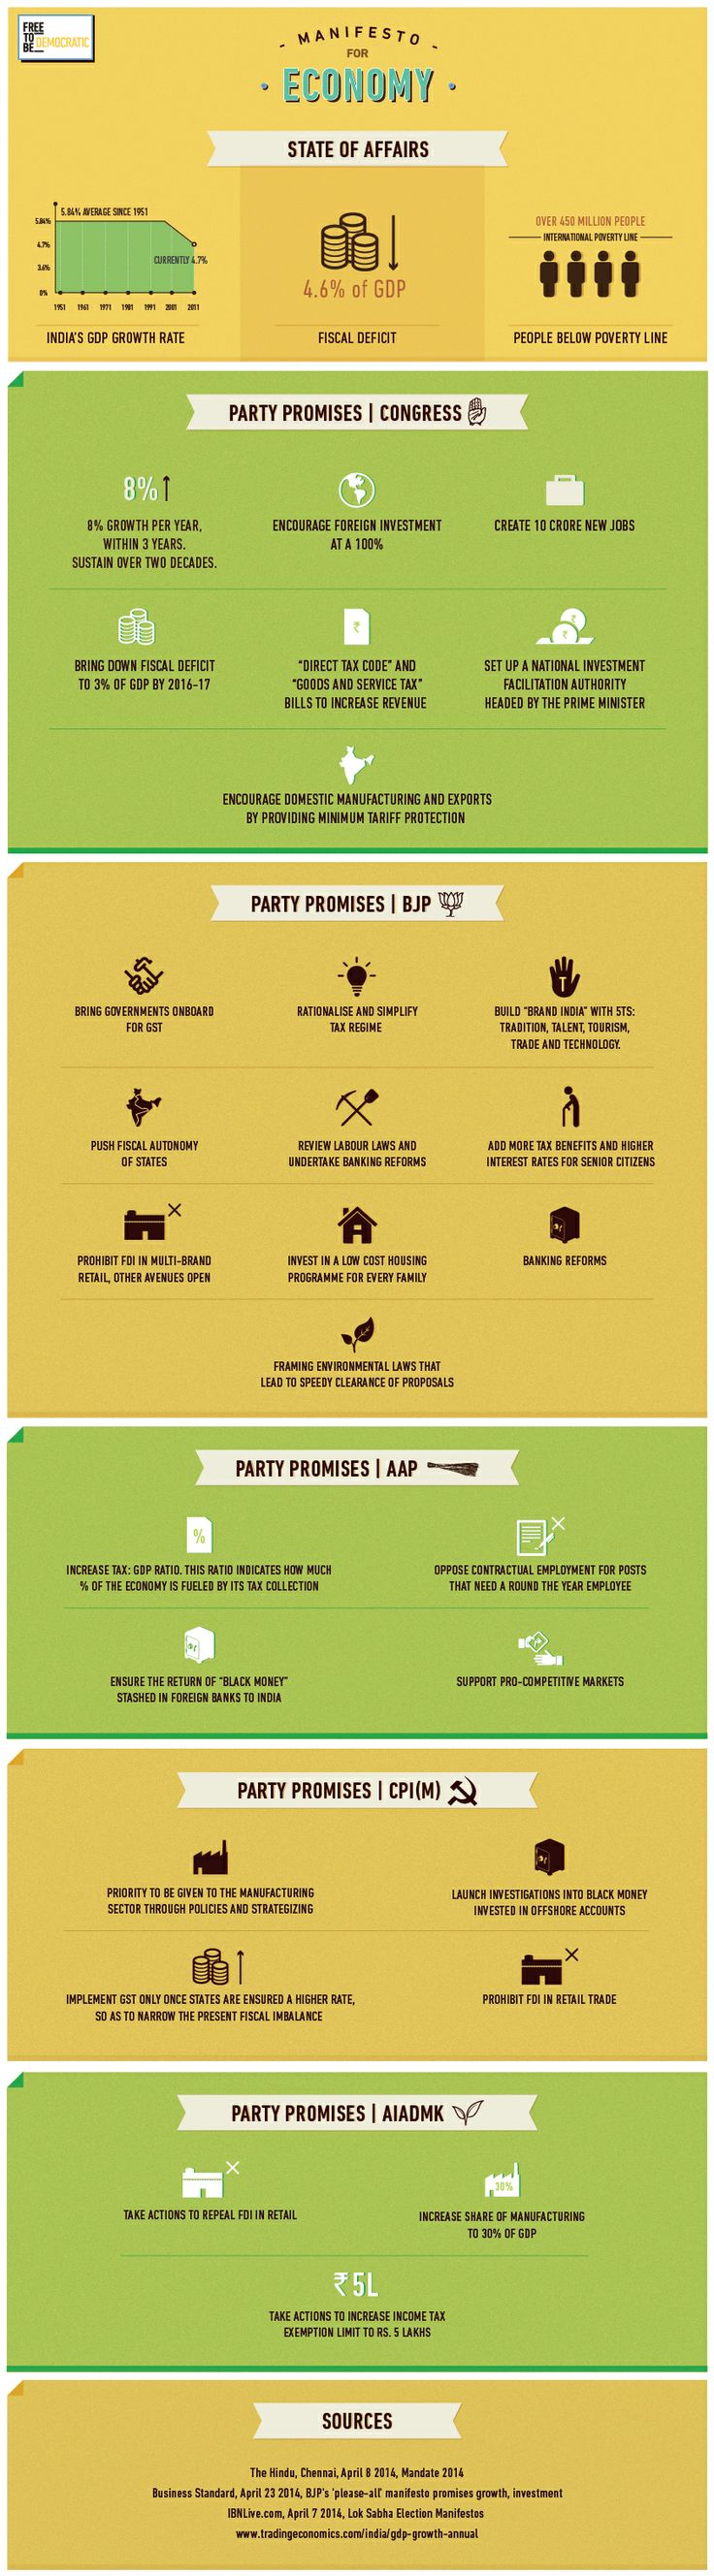 Here's a look at a few promises parties have made for the Lok Sabha Election 2014, in terms of Economy in India.